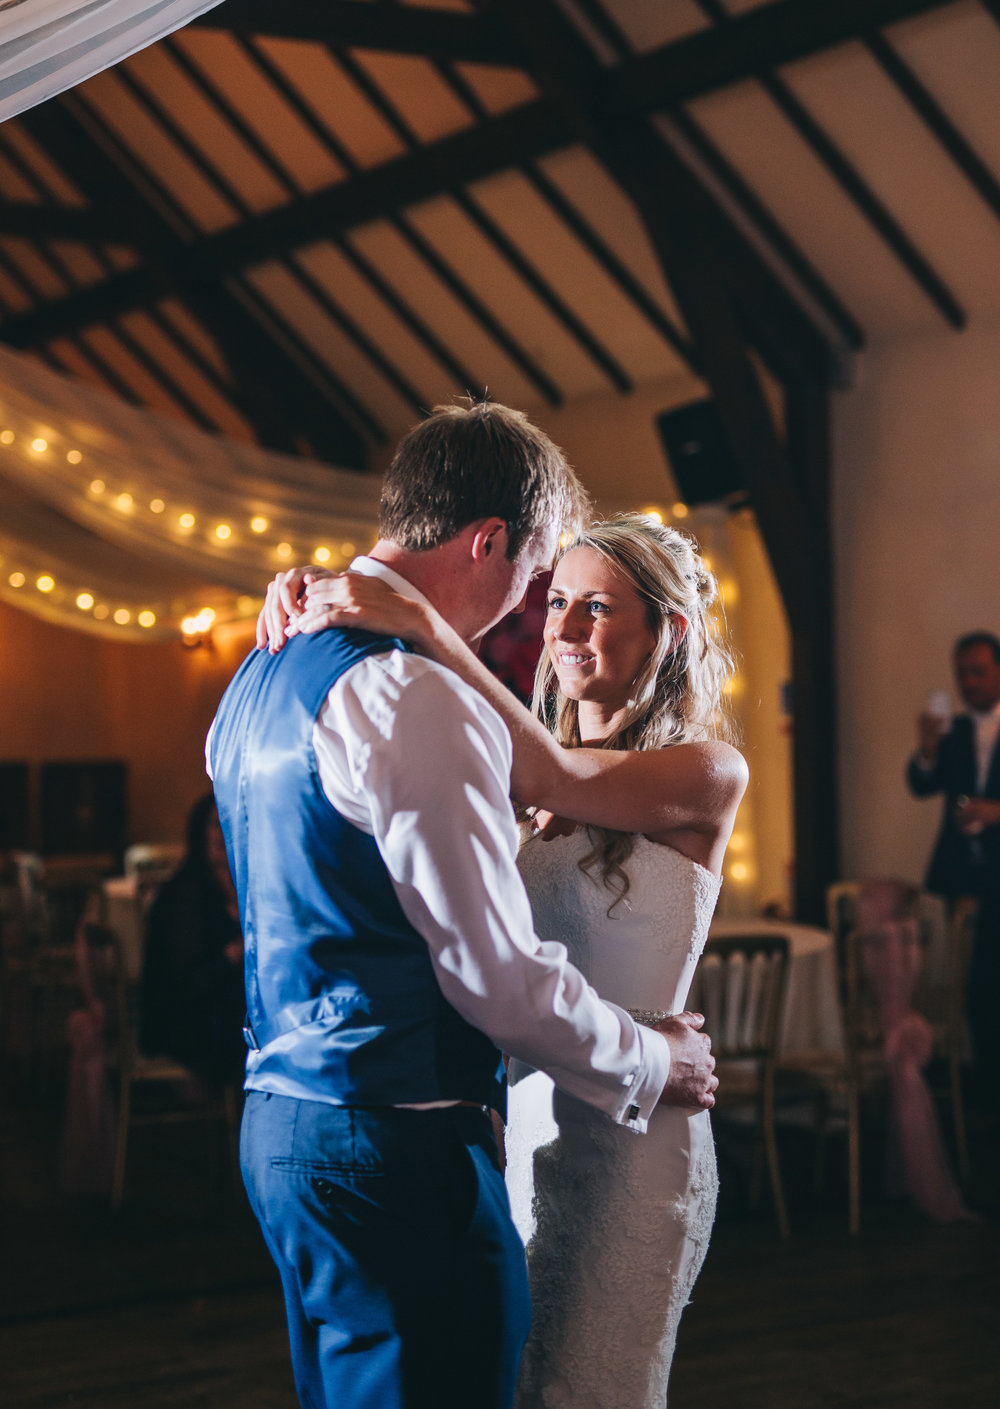 The bride and groom first dance, Creative wedding photographer.